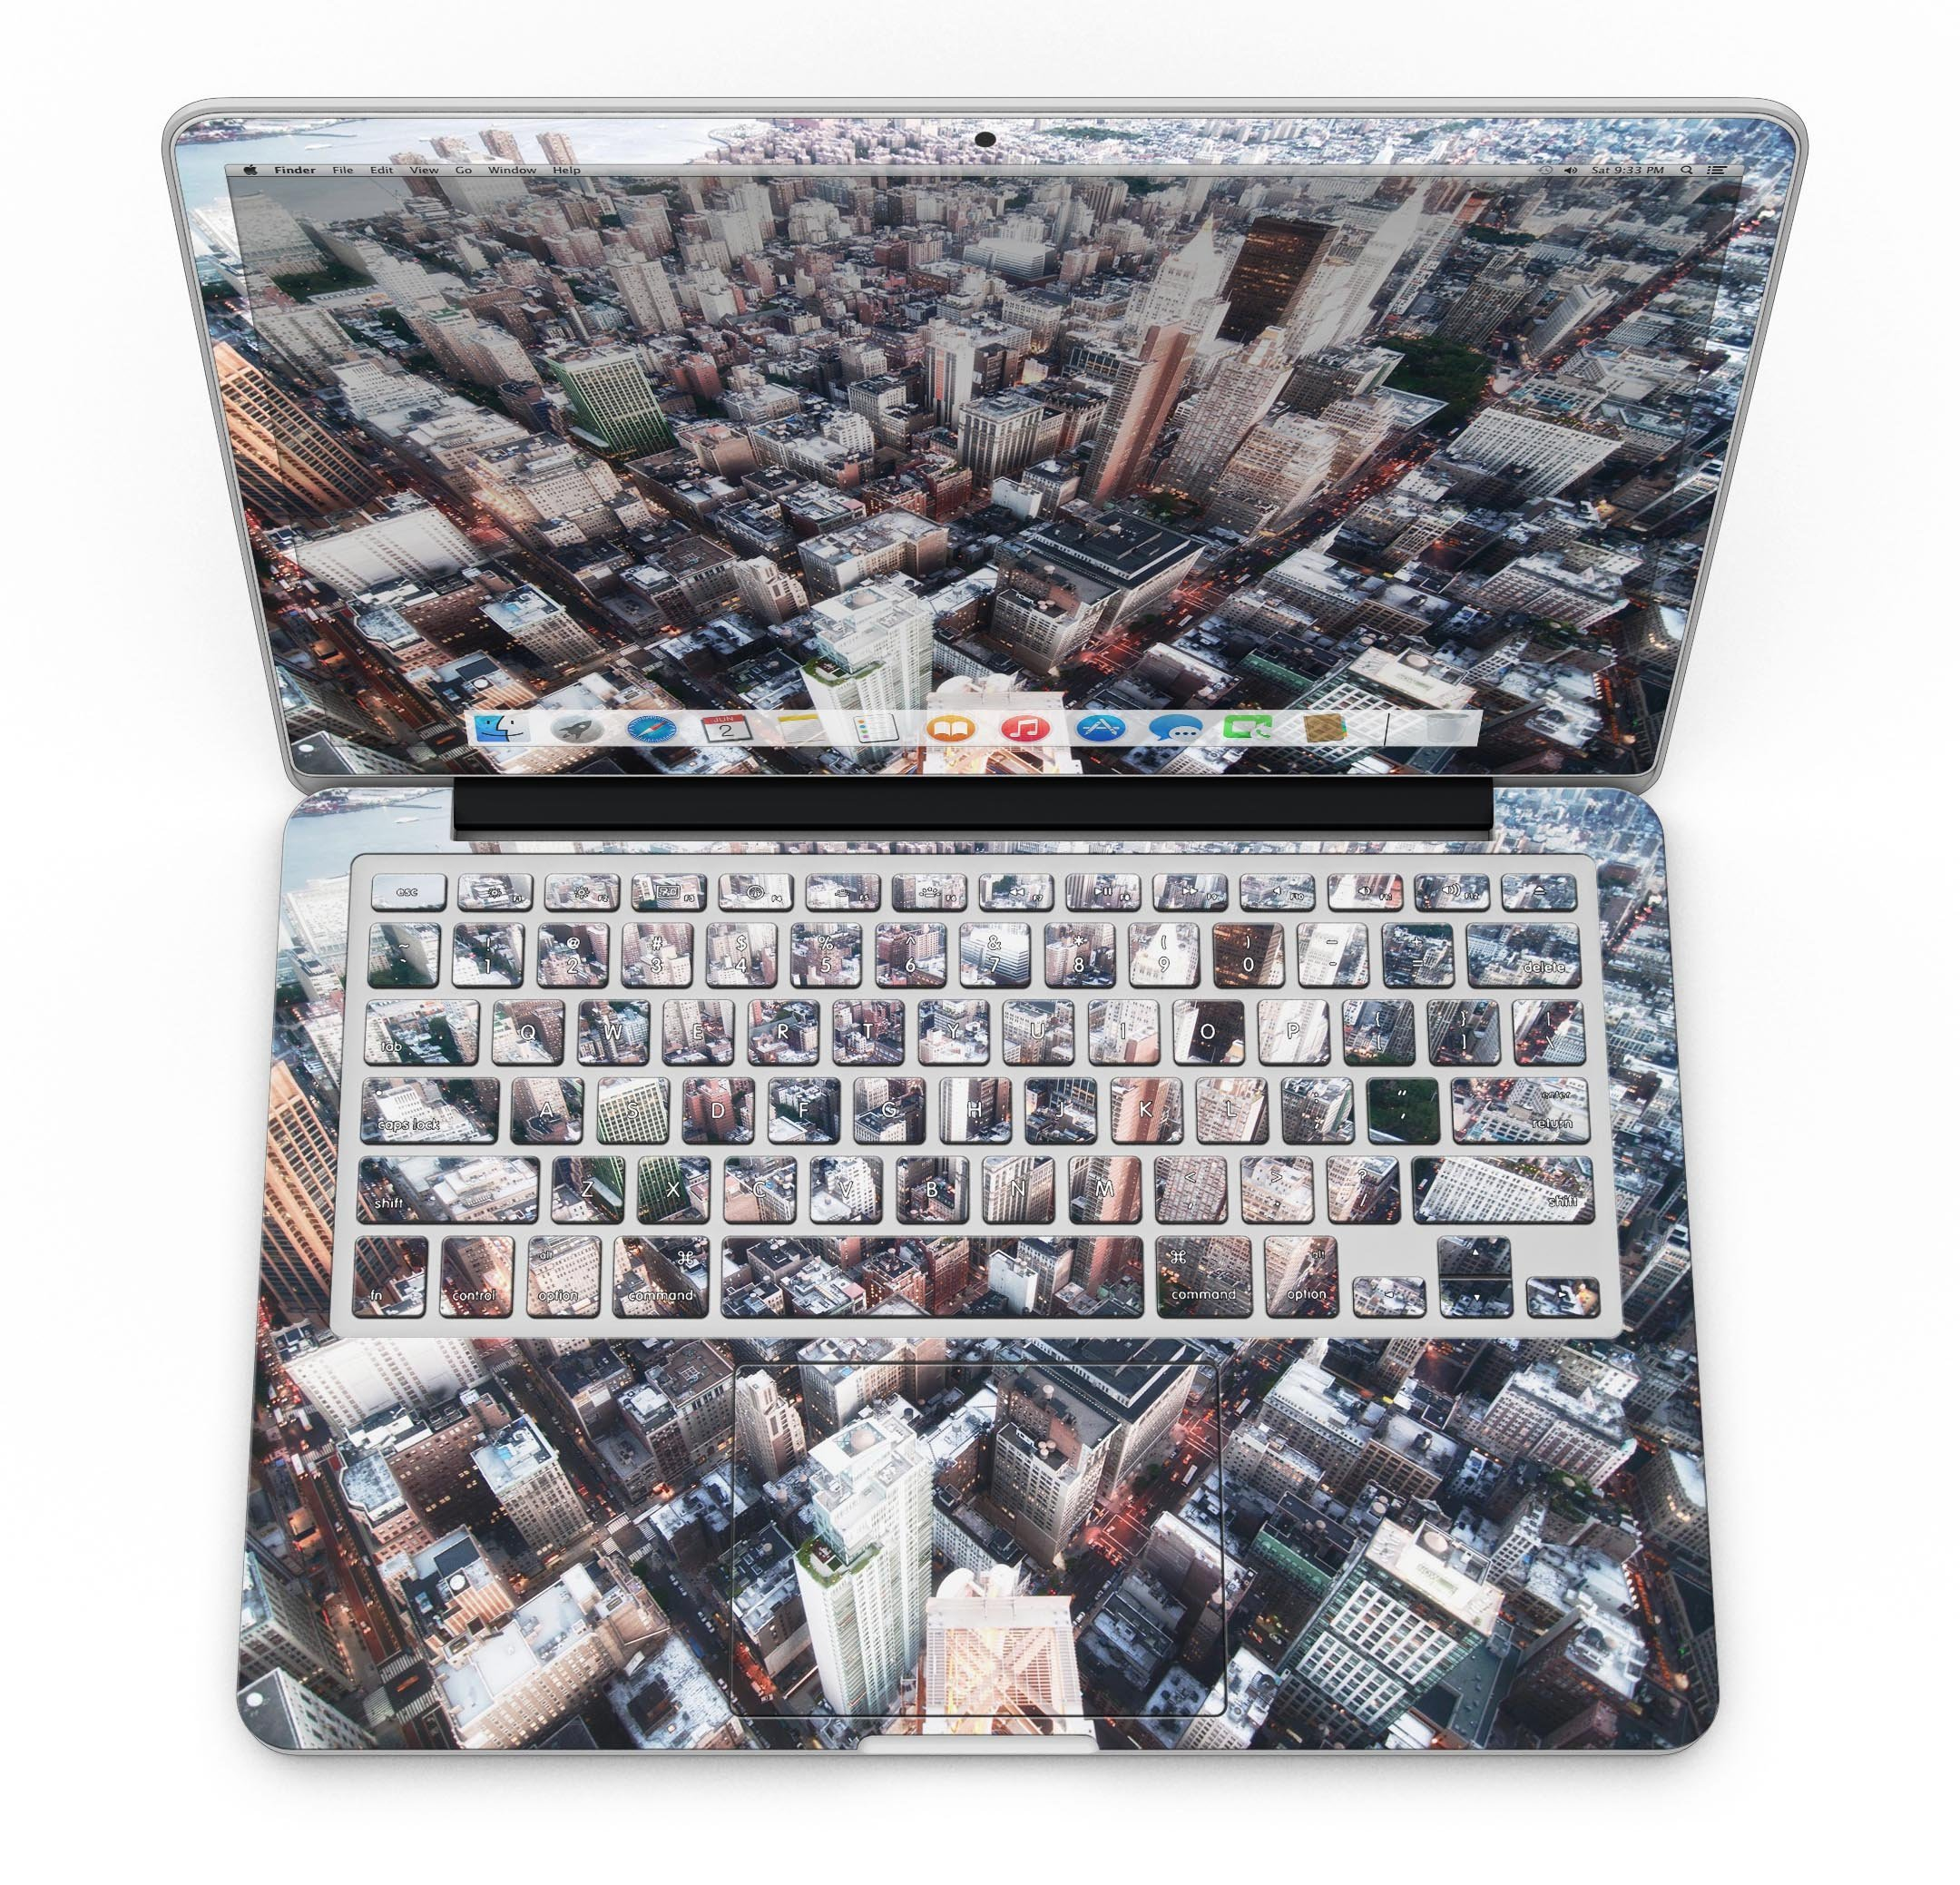 Vintage Aerial Cityscape - MacBook Pro with Retina Display Full-Coverage Skin Kit by iiRov (Image #4)